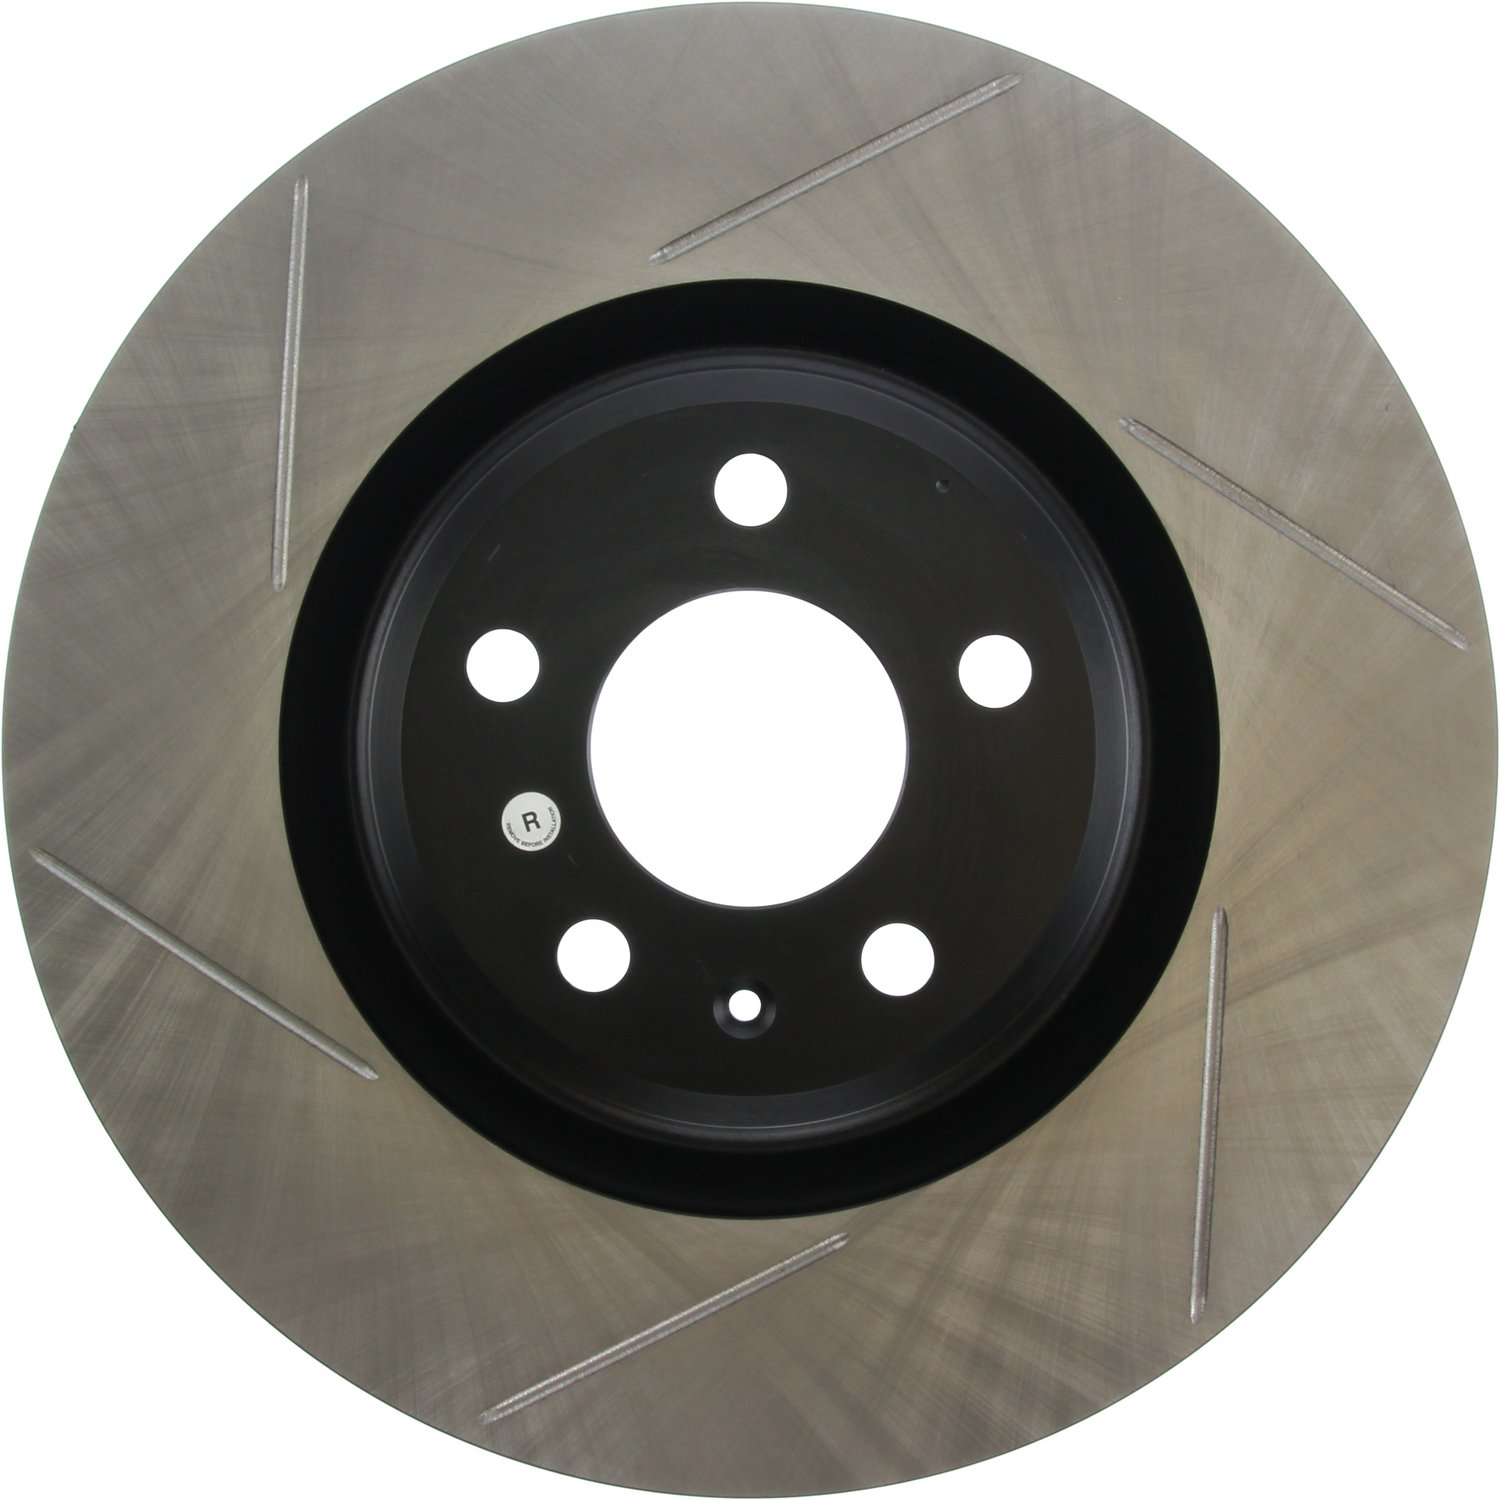 StopTech 126.33138SR Brake Rotor by StopTech (Image #1)